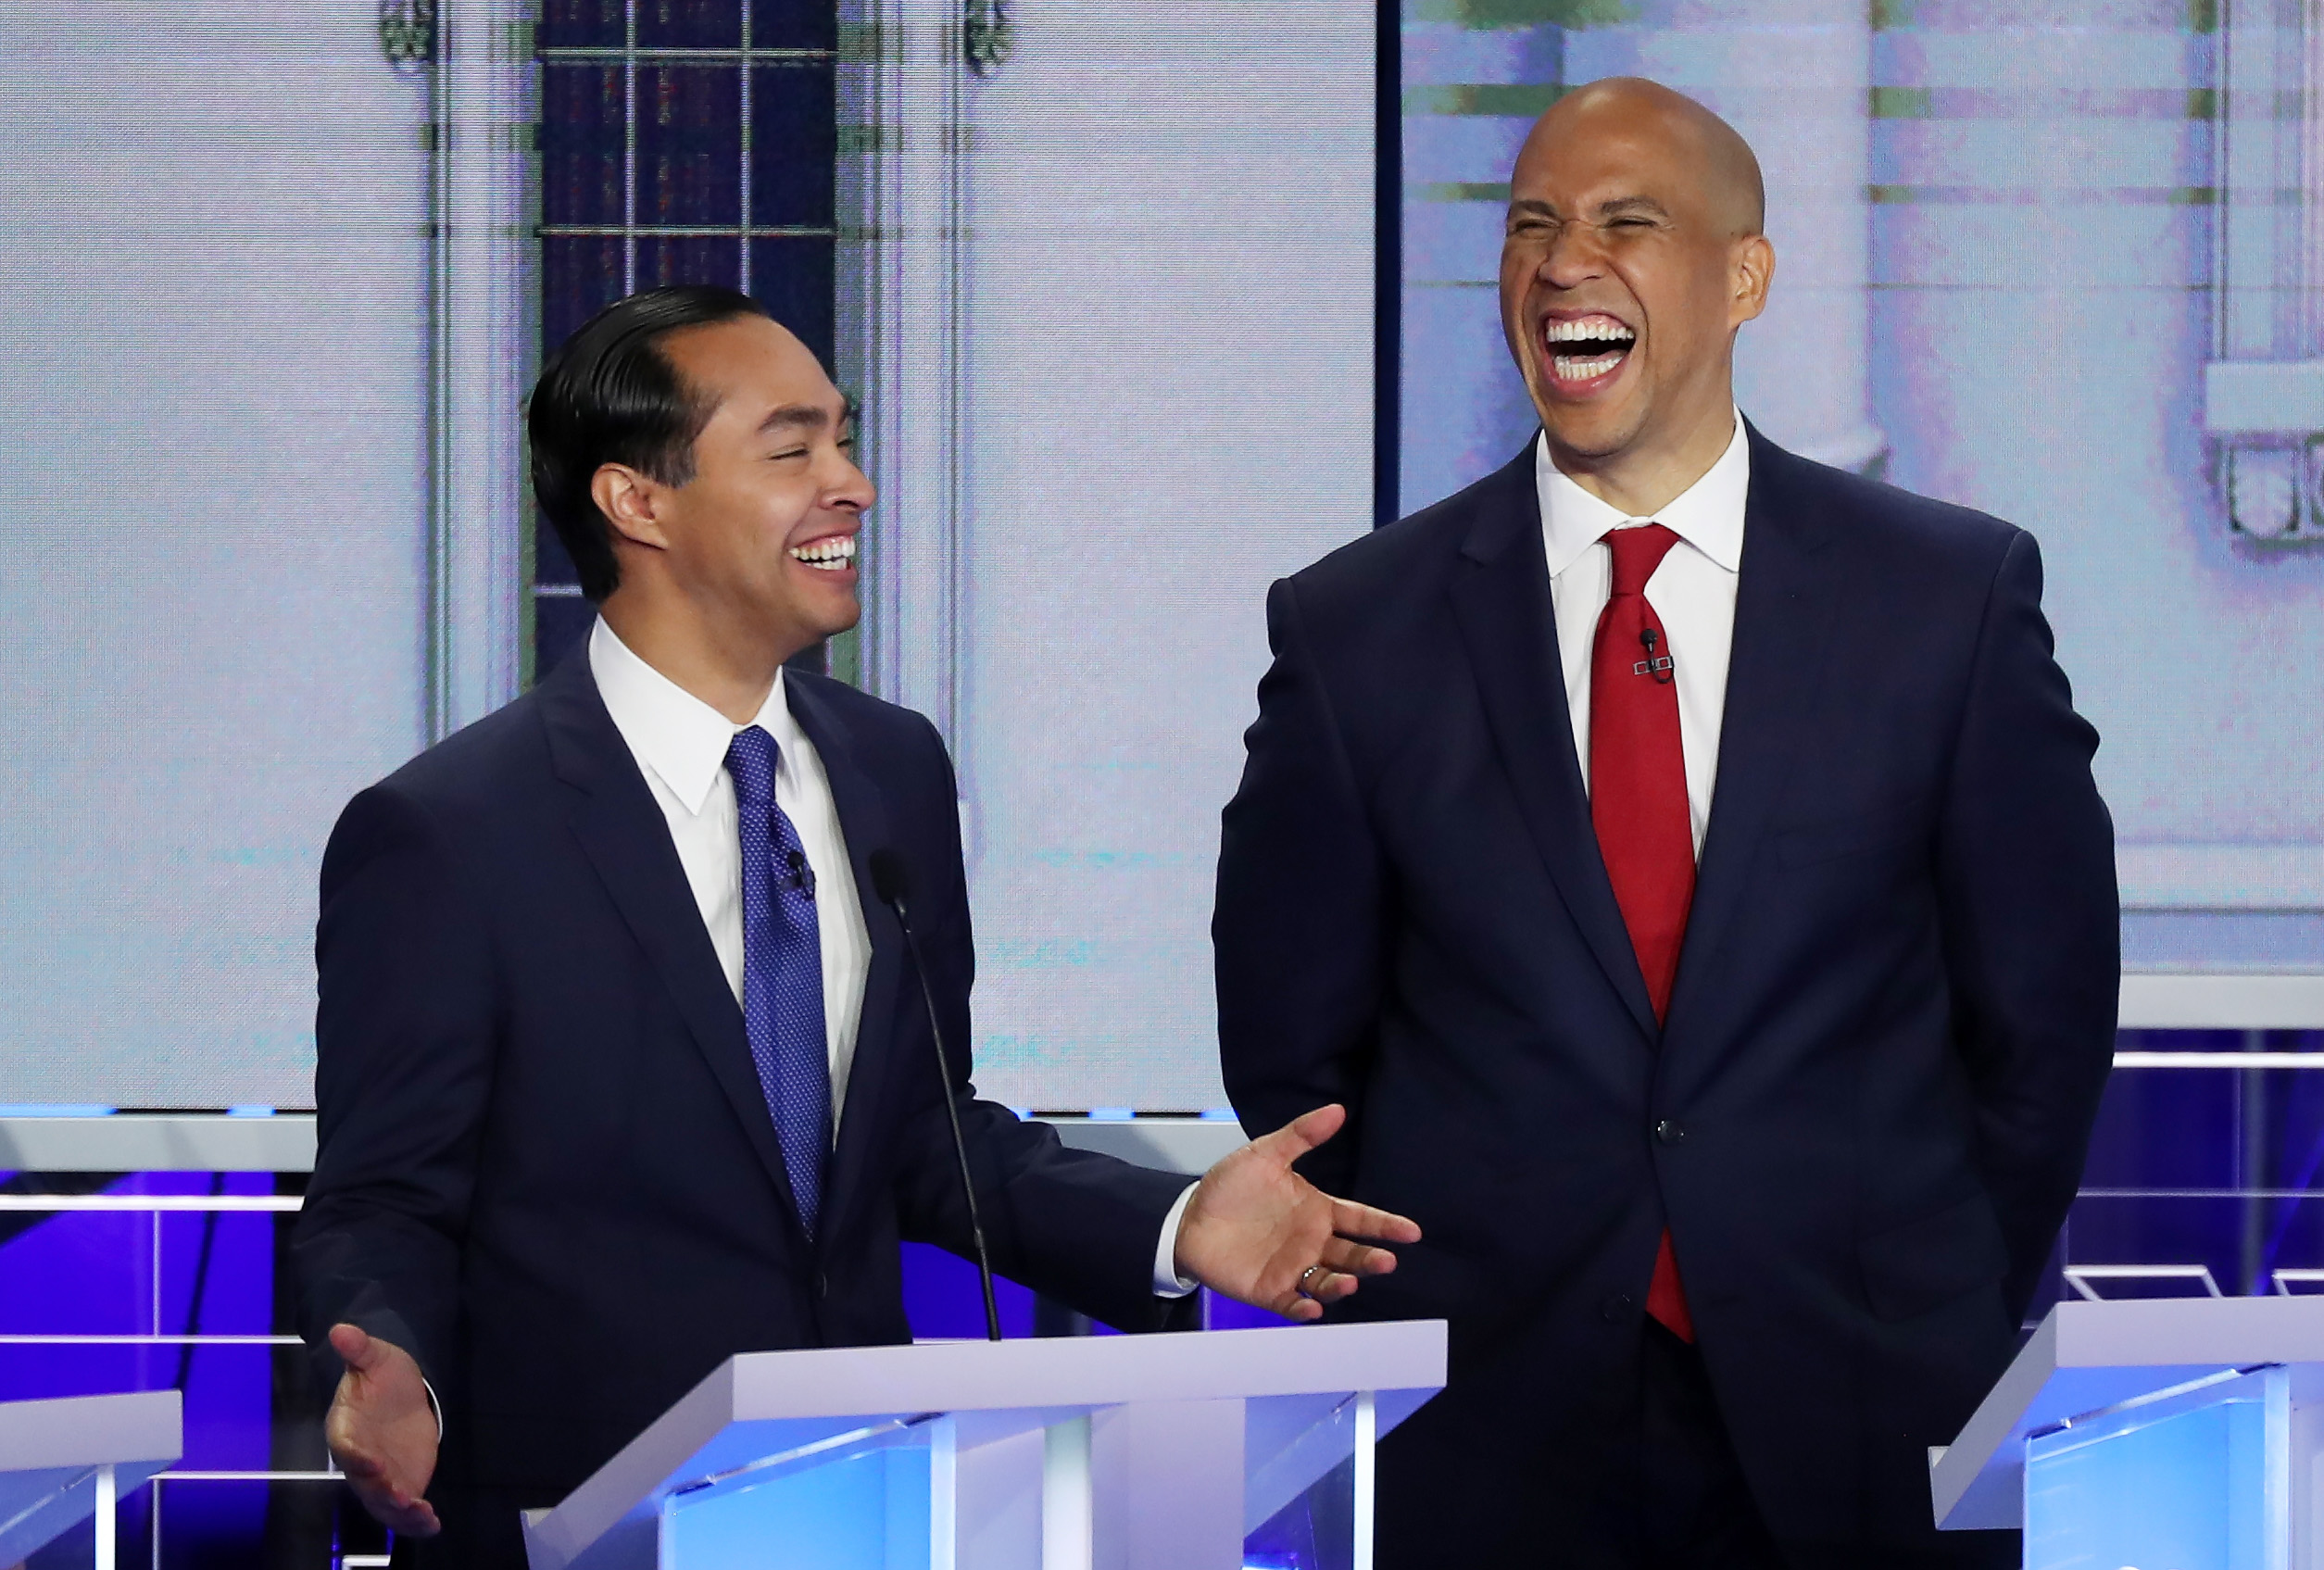 Democrats took a risk by speaking Spanish during the debate